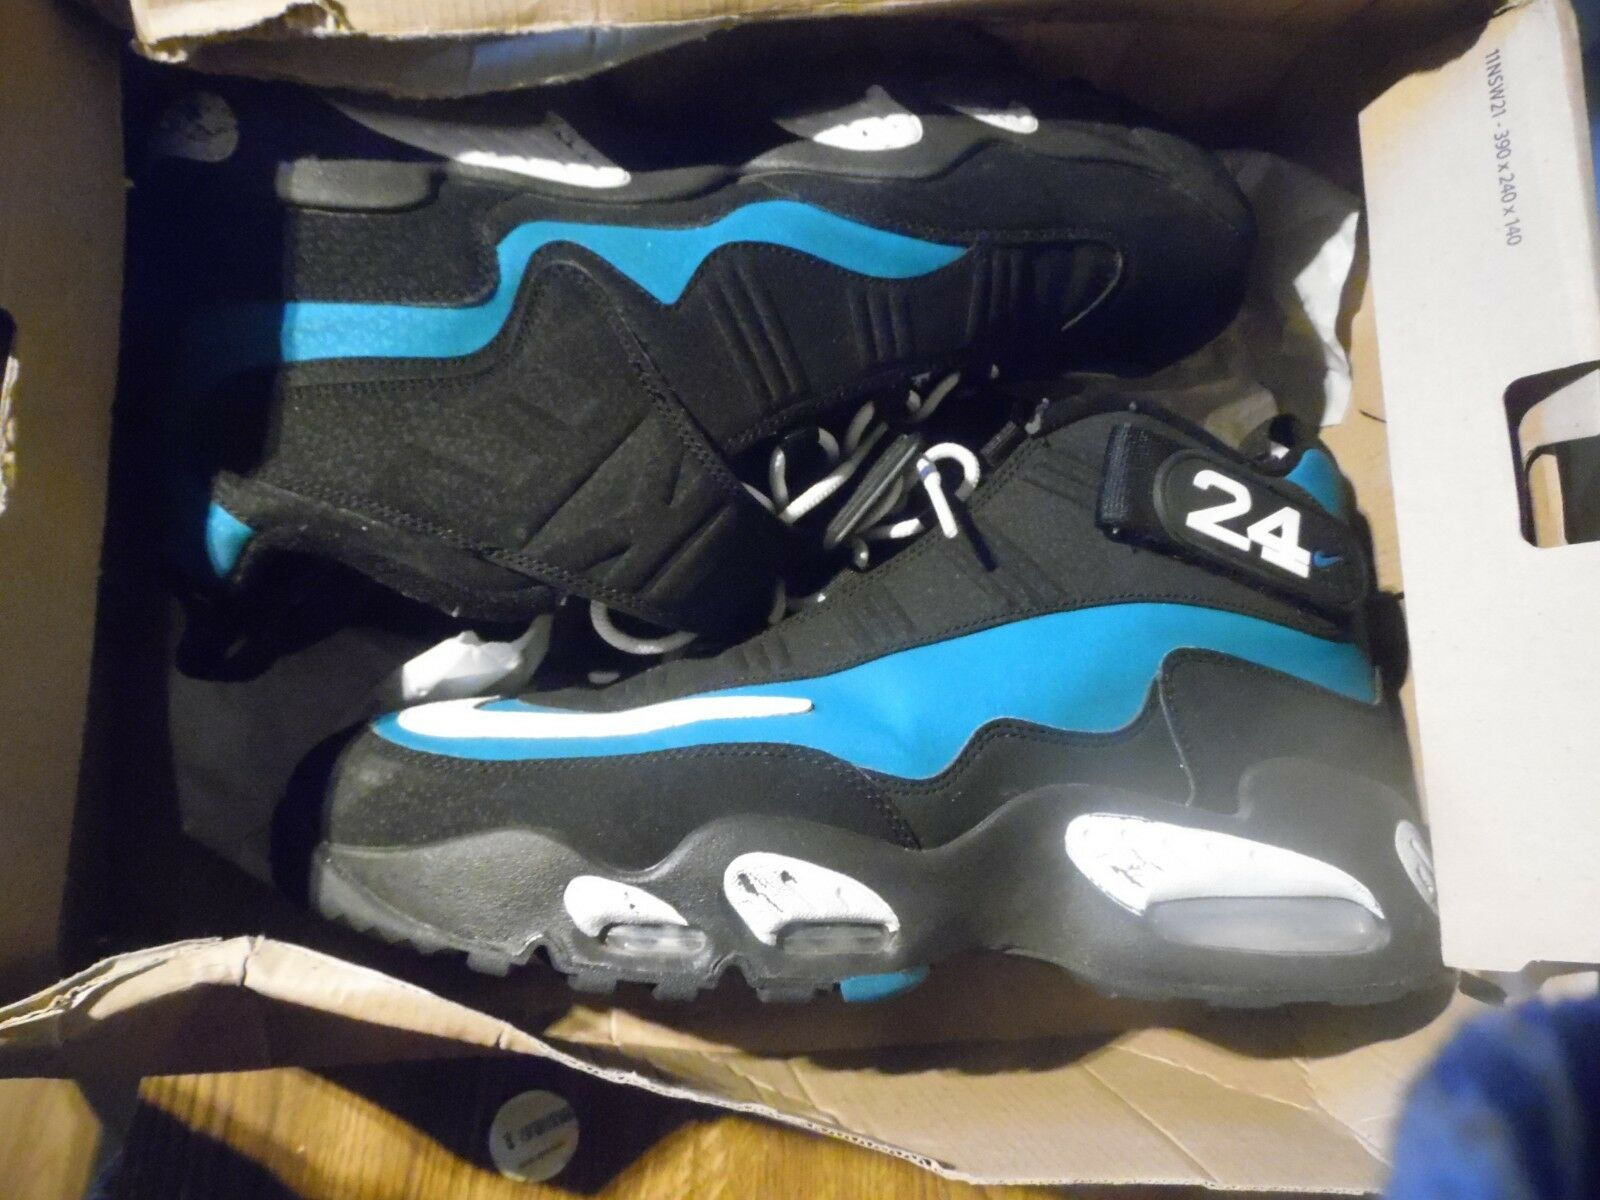 Chaussure de basket-ball Nike Air Blake Griffey Max 1 Taille 11 1/2 354912 pour hommes